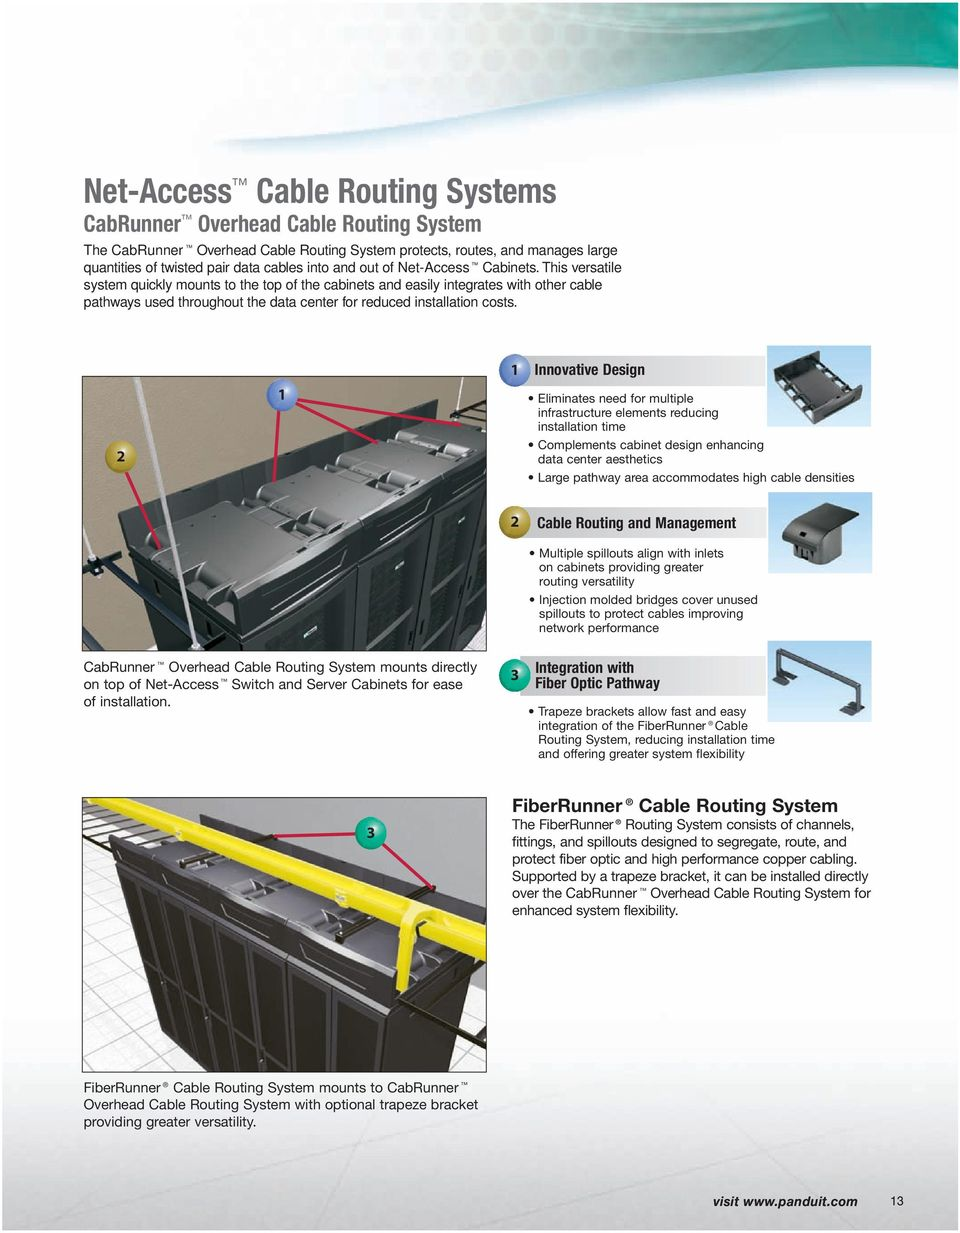 This versatile system quickly mounts to the top of the cabinets and easily integrates with other cable pathways used throughout the data center for reduced installation costs.